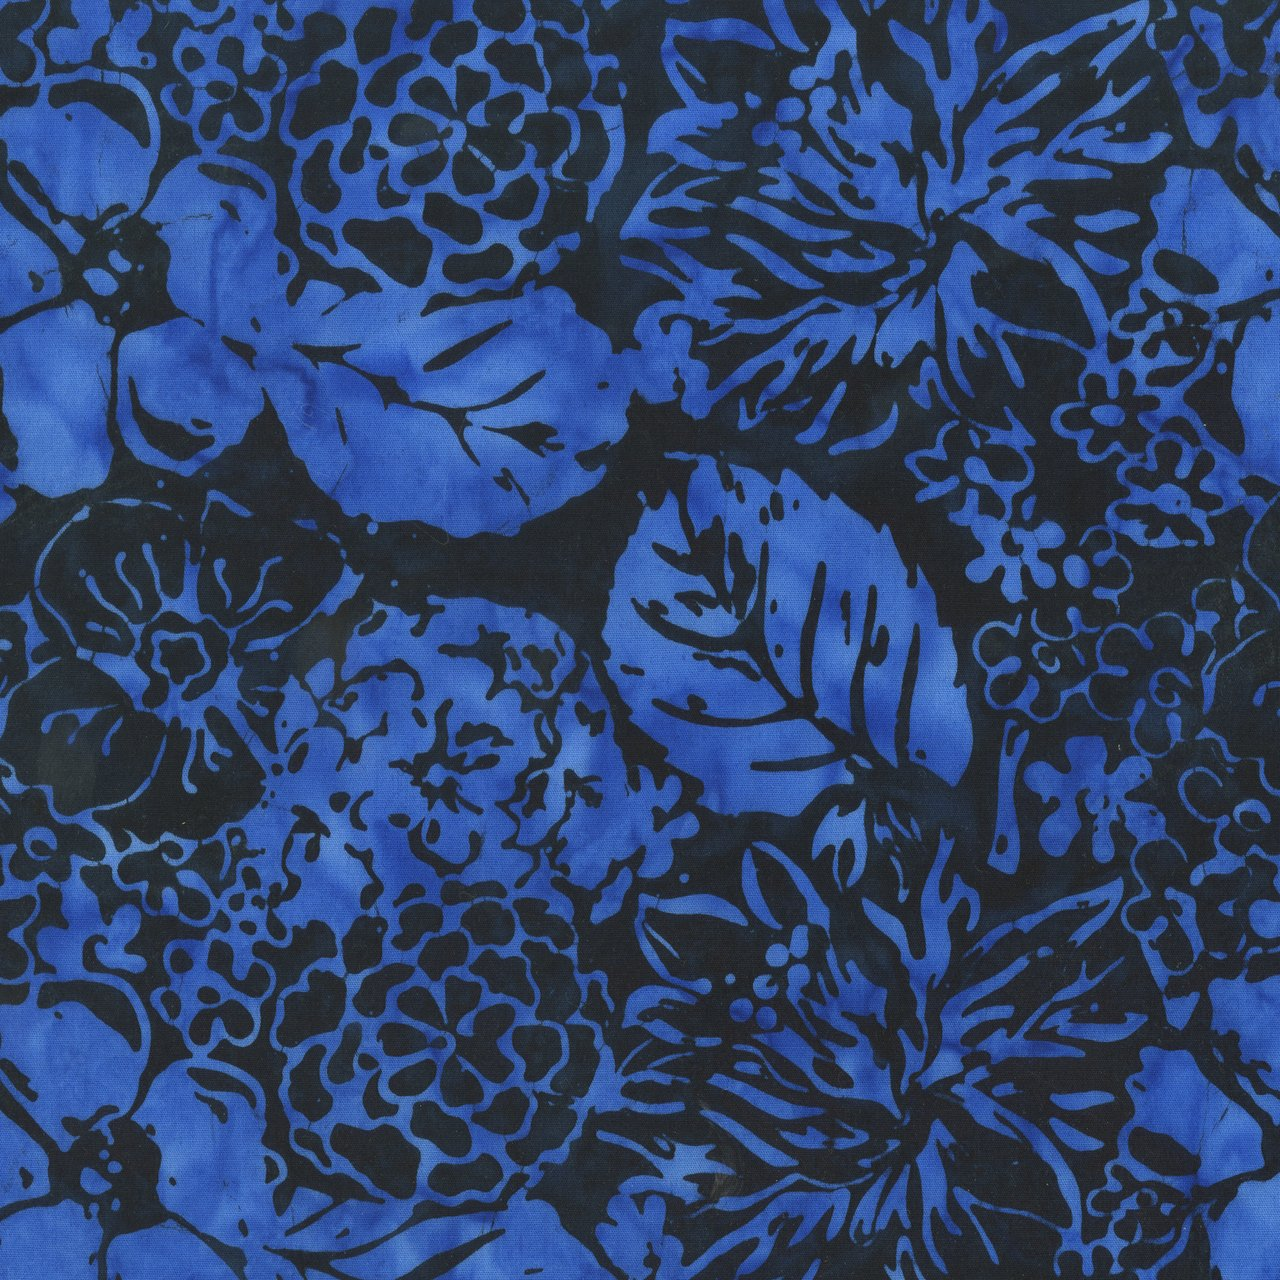 ANTH- Royal Blue Floral on Dark Navy